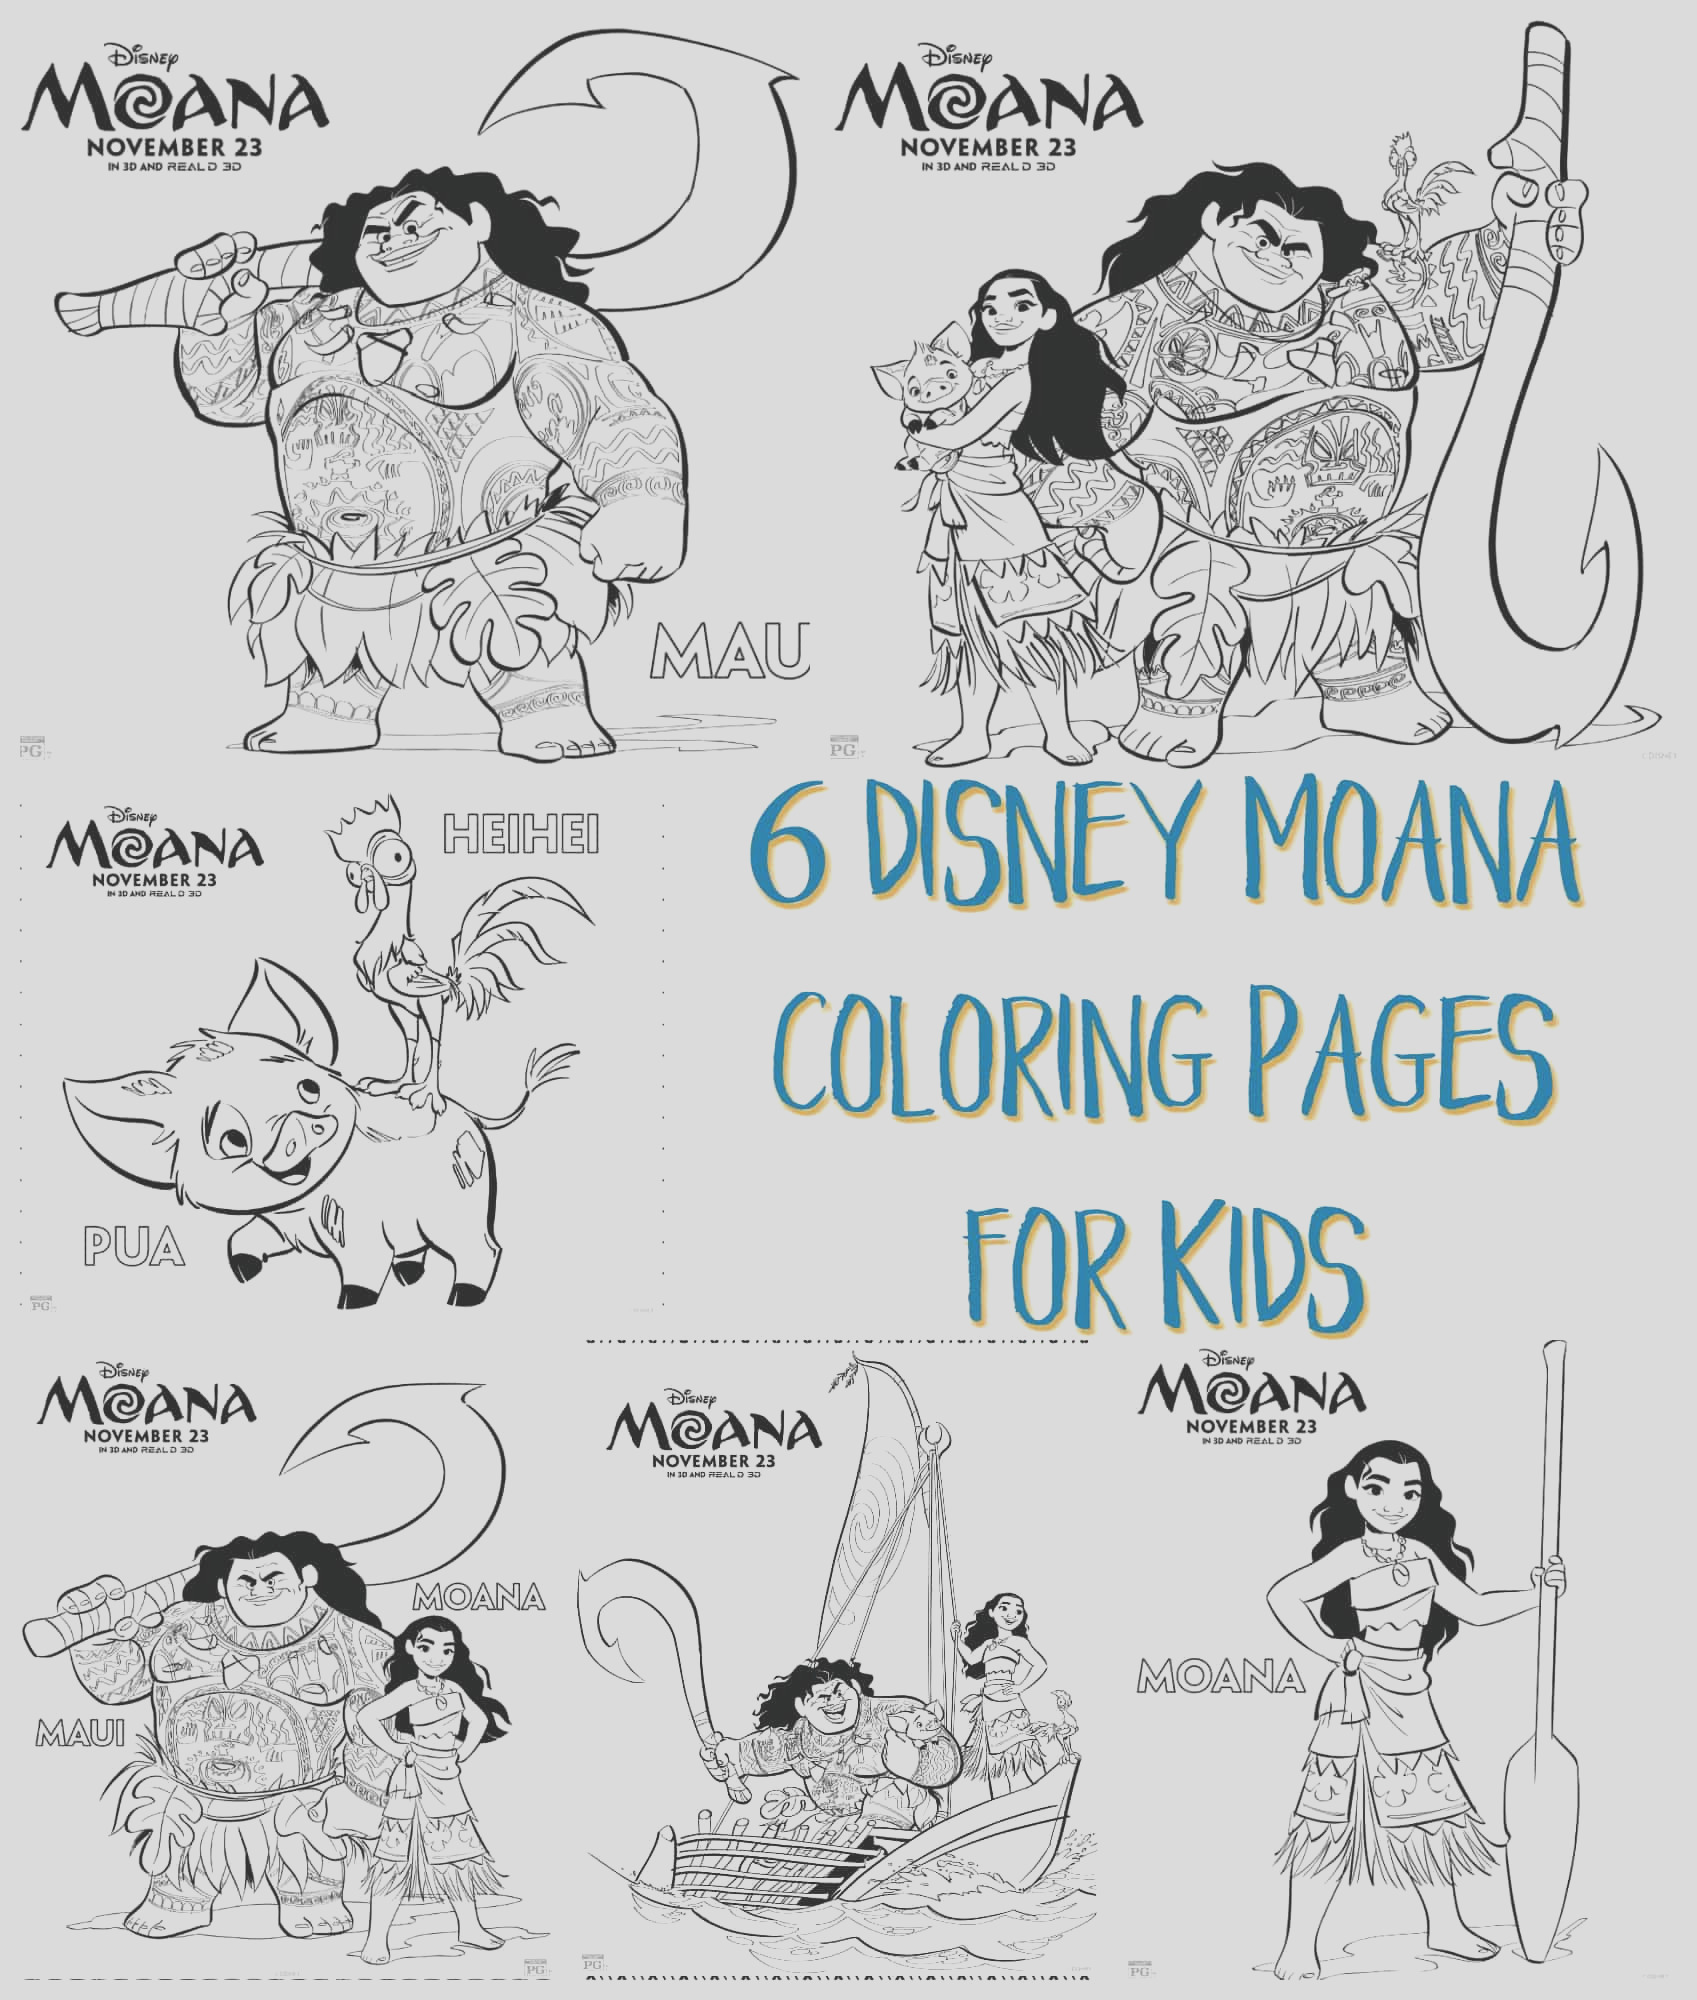 disney moana coloring pages kids